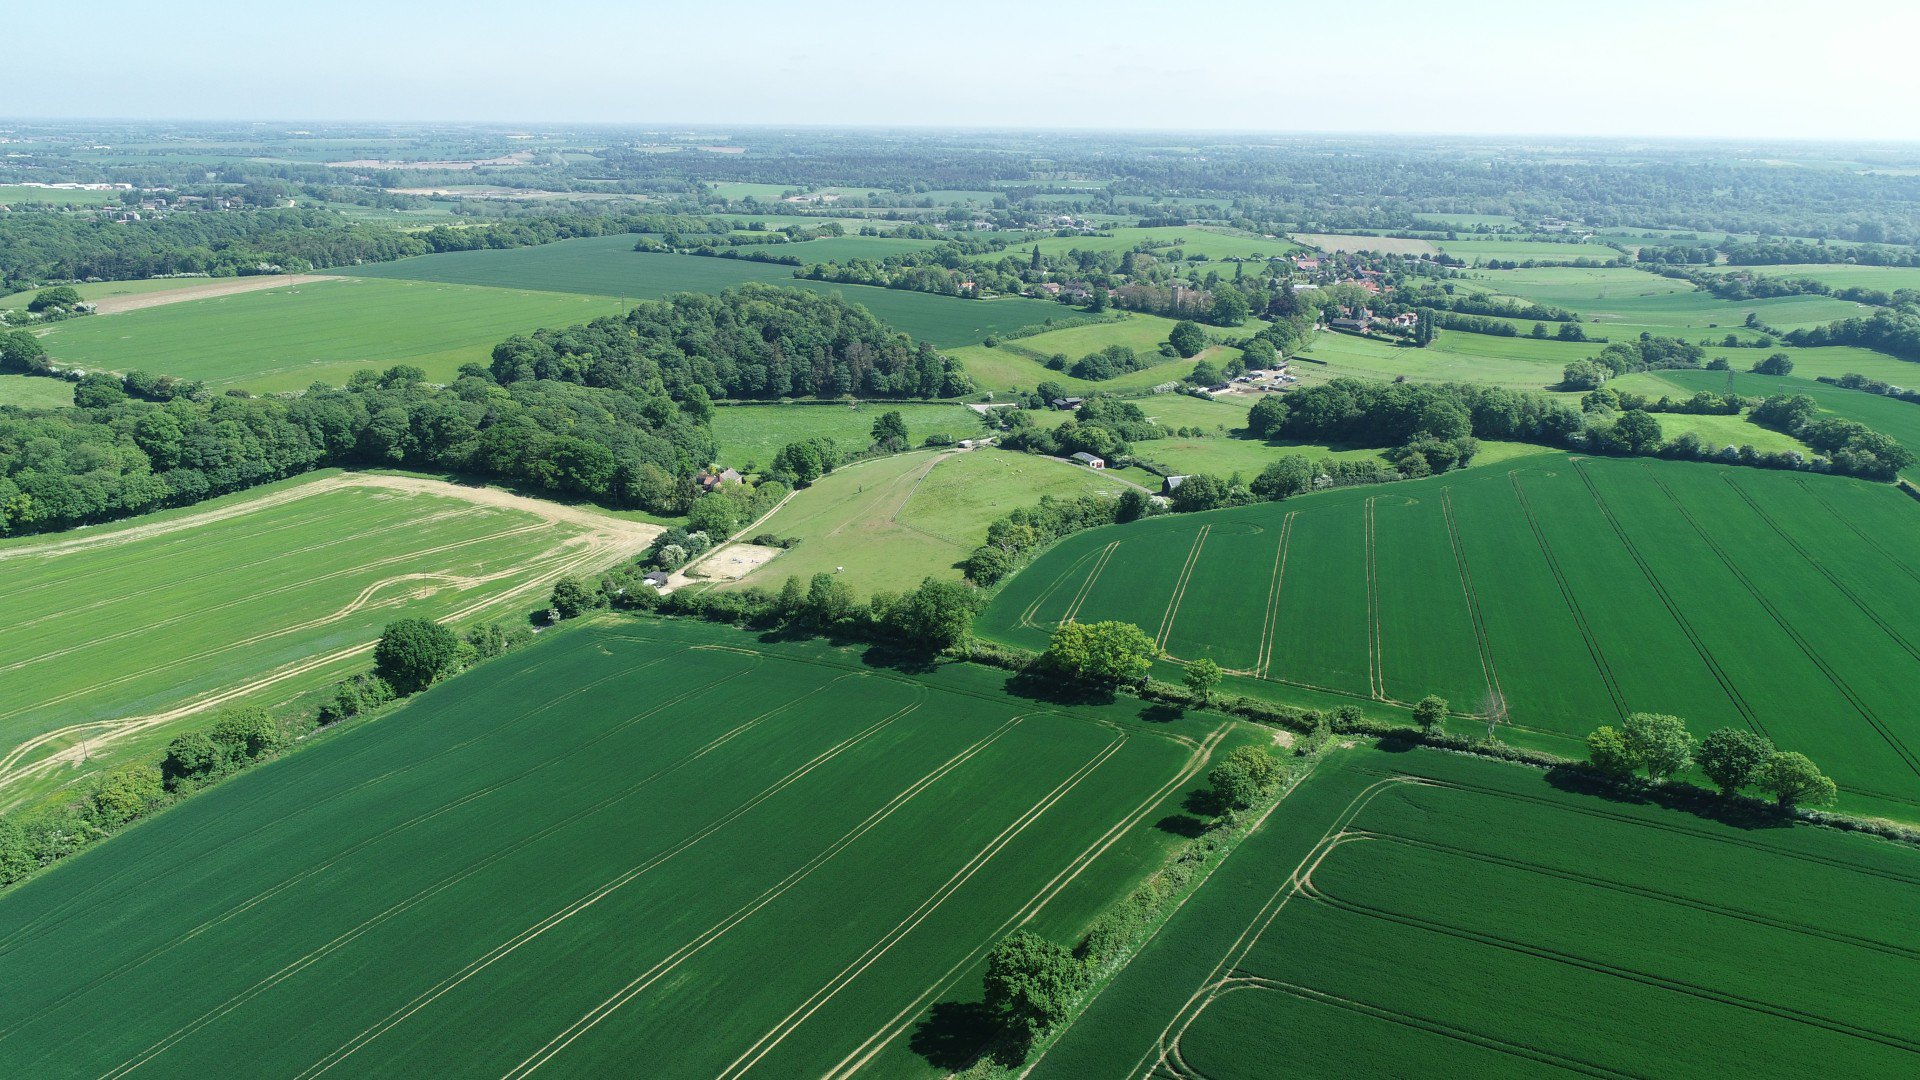 Aerial photograph of fields in Baylham, Suffolk